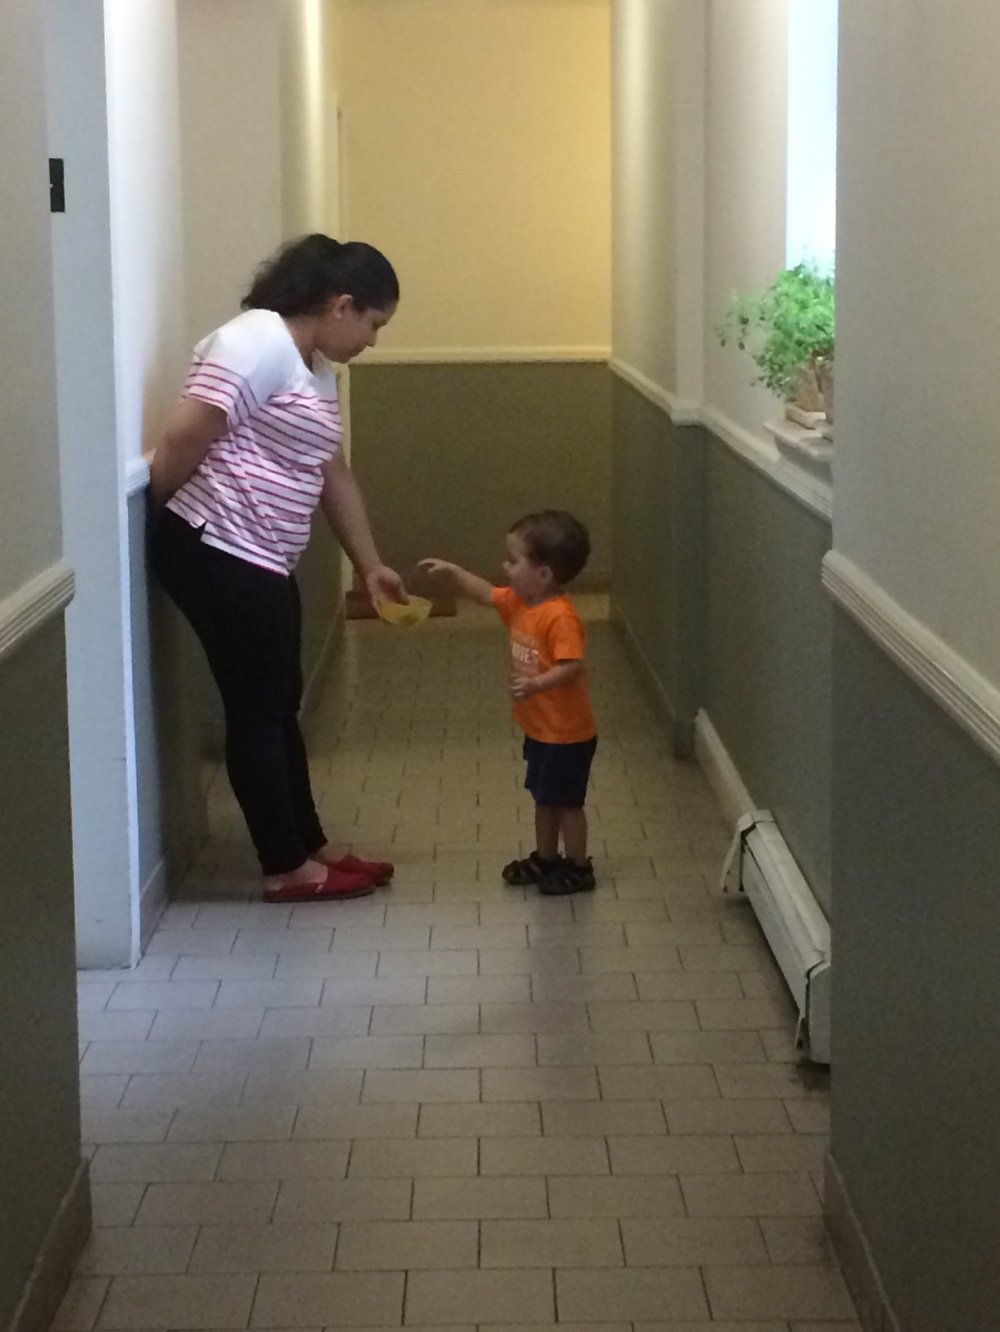 Toddler with nanny in hallway